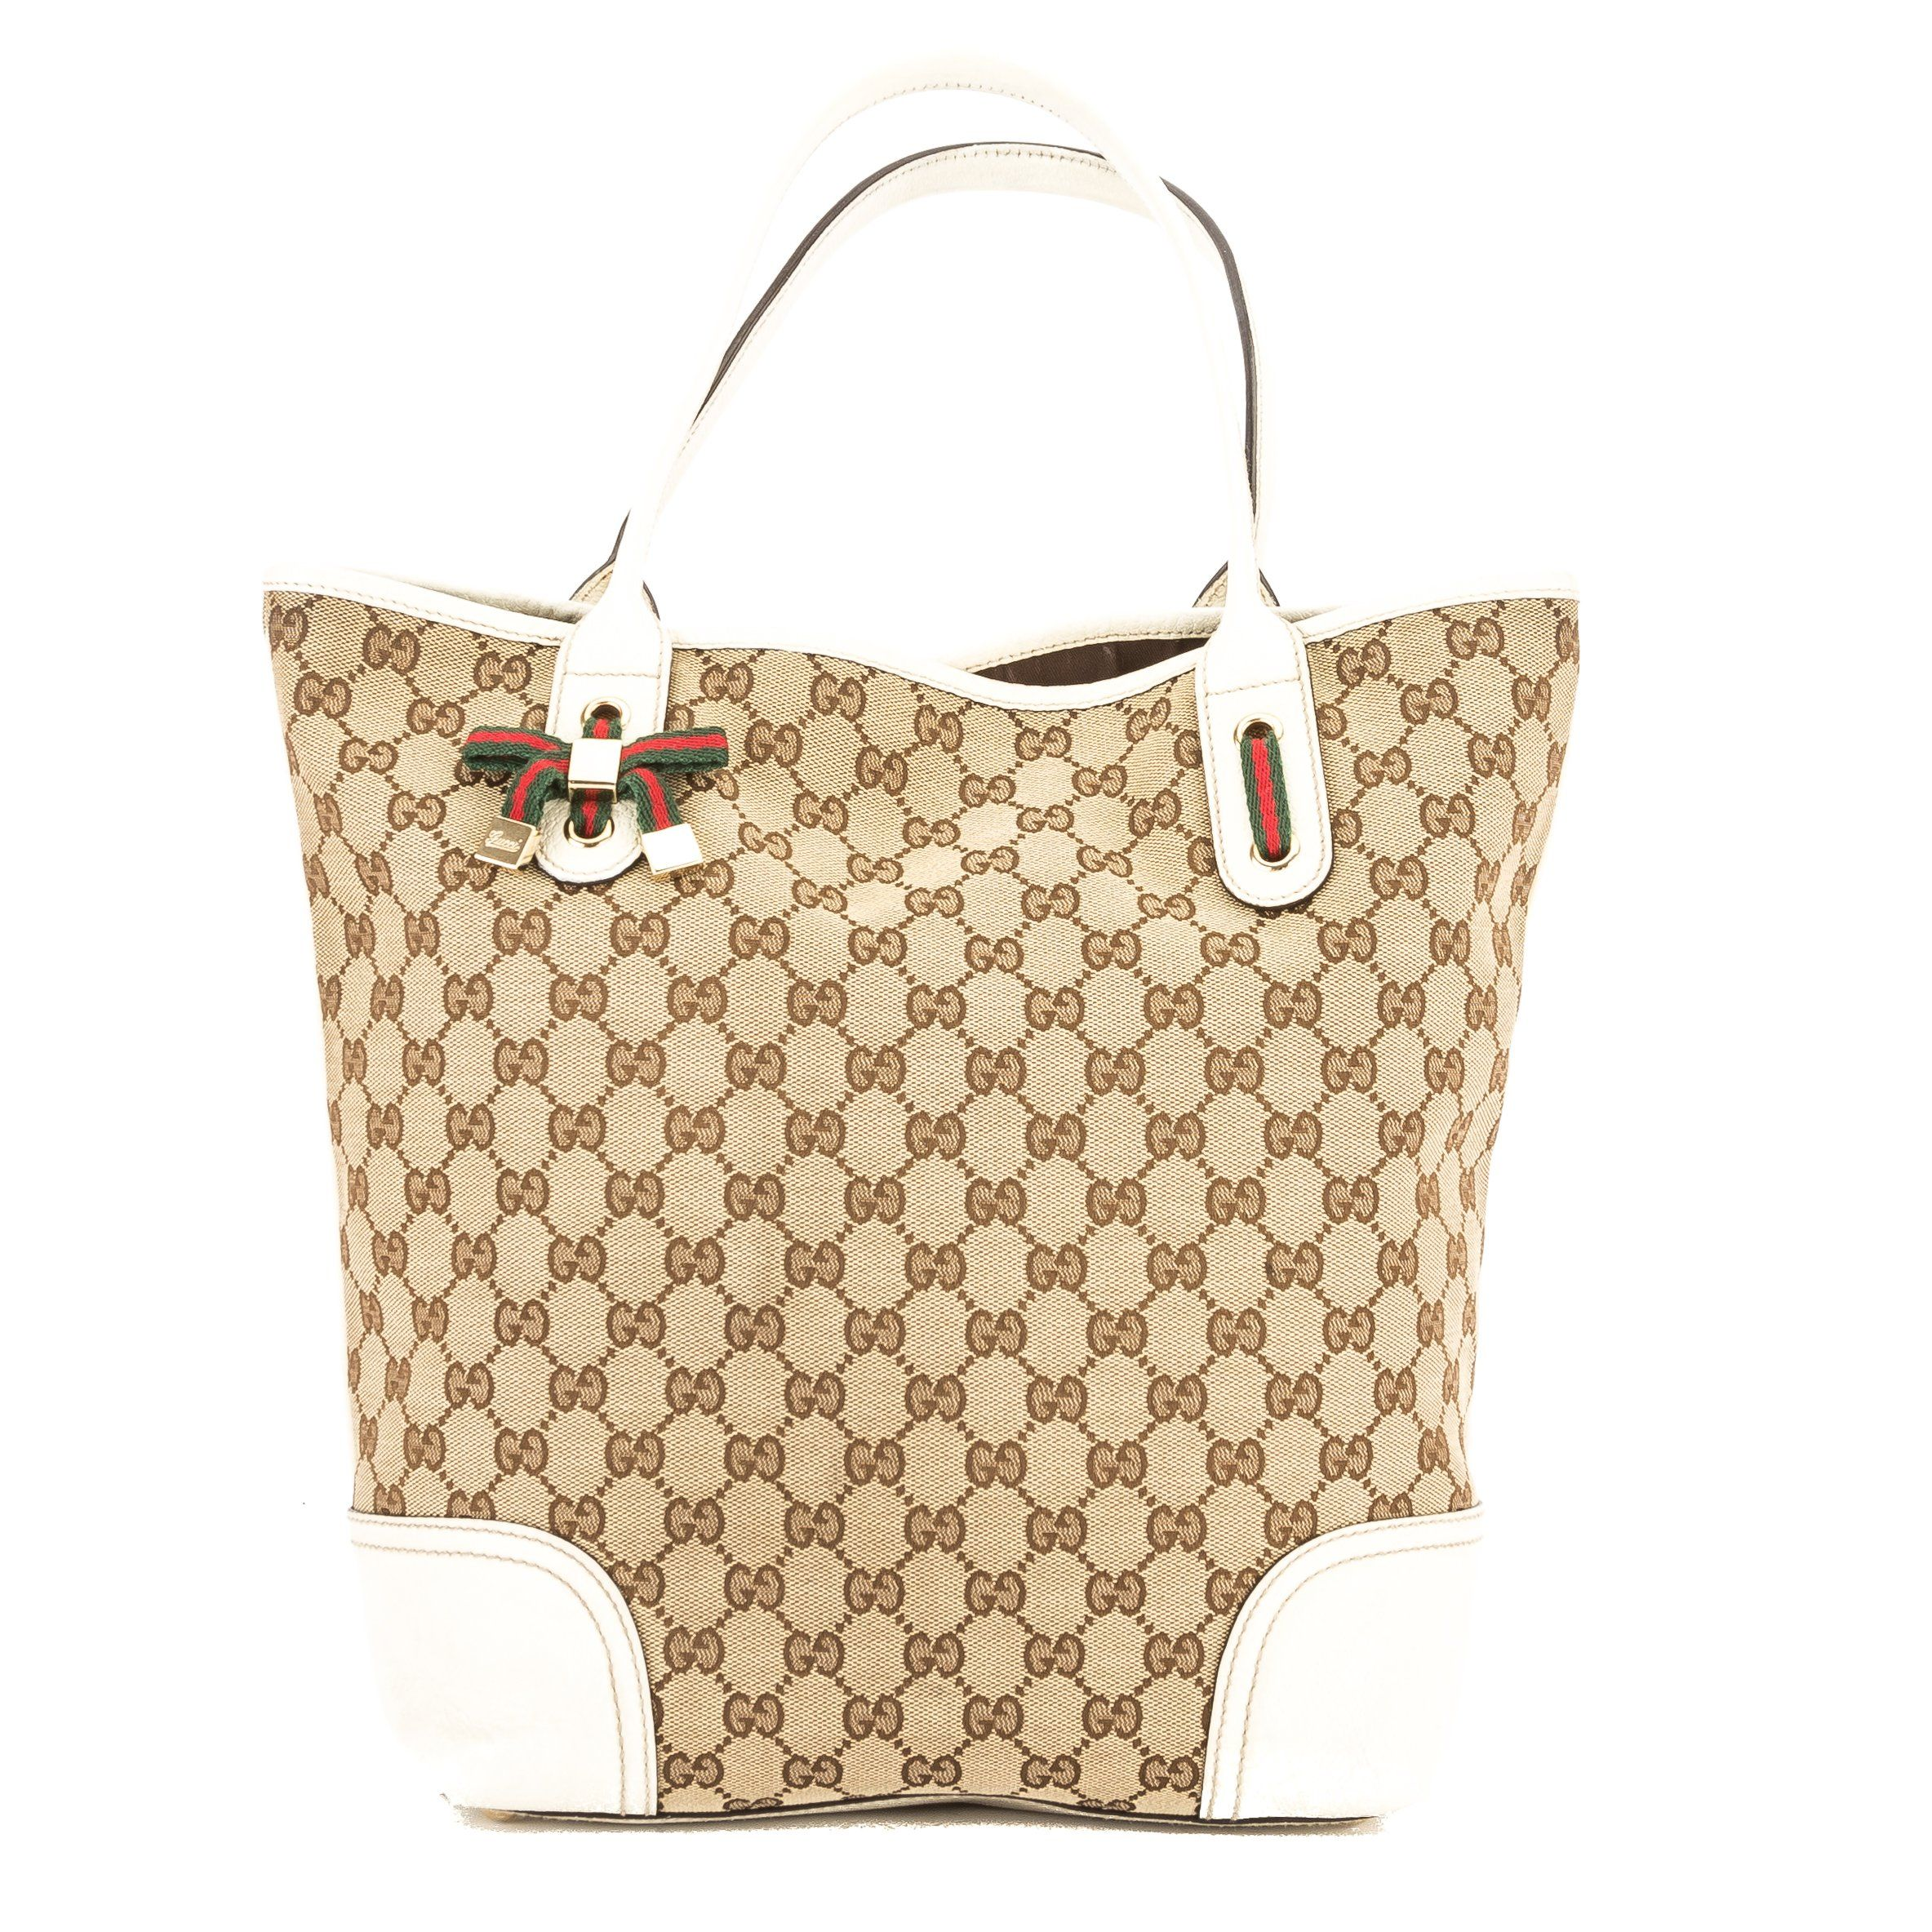 5448f9628d8 Gucci White Leather GG Monogram Canvas Web Tote Bag (Pre Owned)